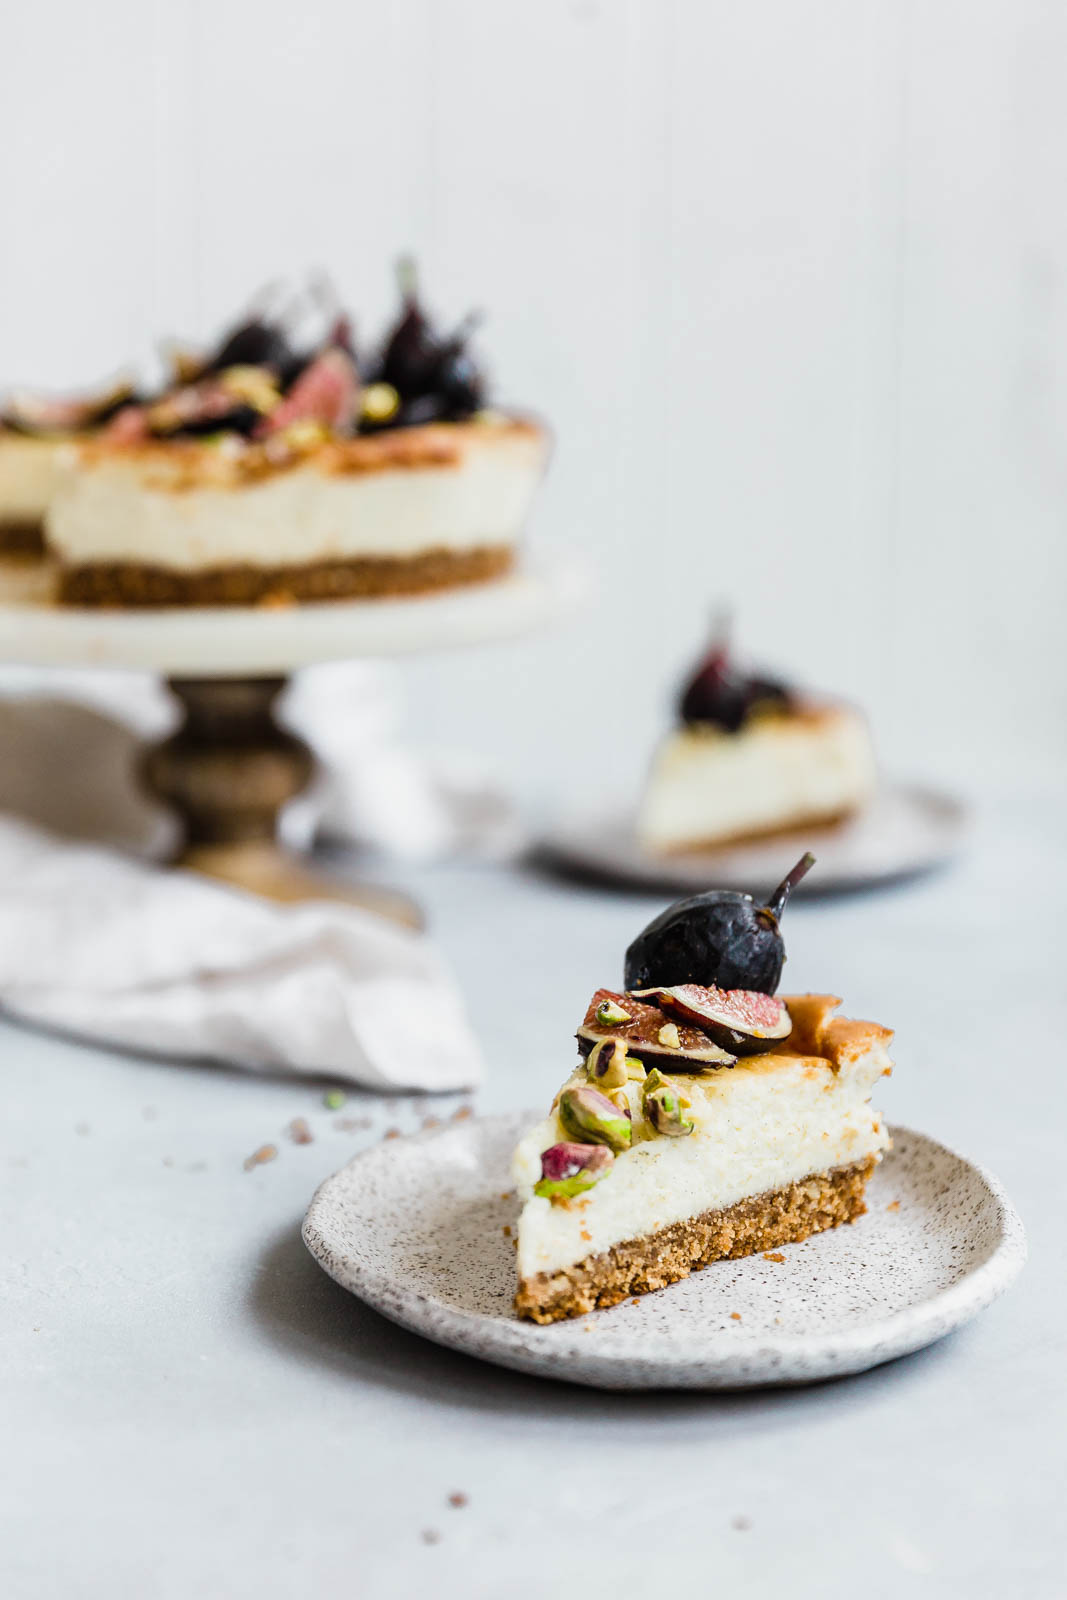 Classic gets an update with this smooth, creamy Vanilla Bean Cheesecake jazzed up with fresh figs, pistachios, and honey.